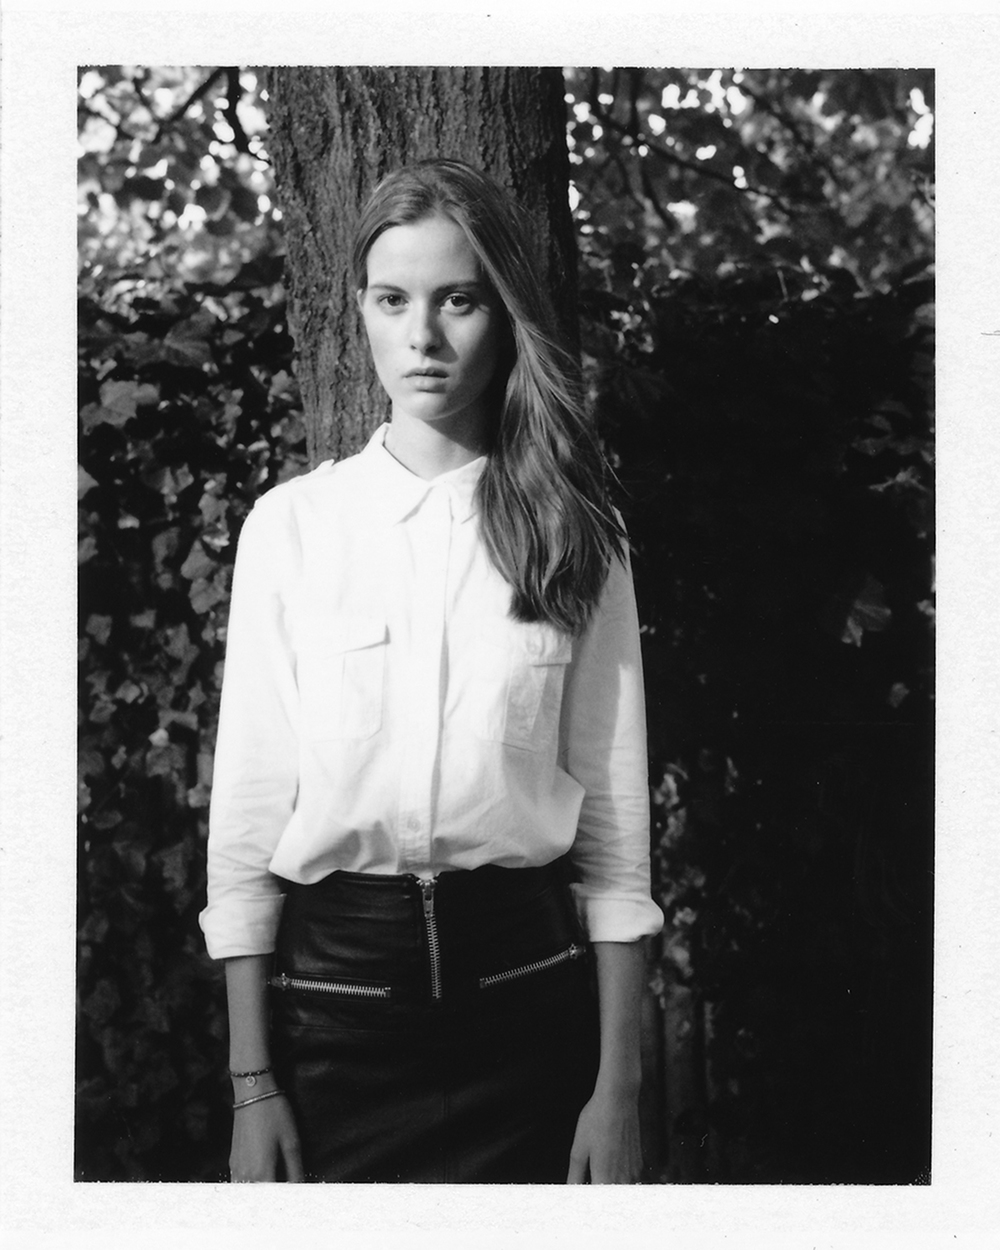 Kim modelling an upcycled leather skirt from Pelechecoco & a crisp white shirt from Skall Studio, all from My Fair Shop. Photographed by Mikkel Vigholt with equipment borrowed from One of Many Cameras.